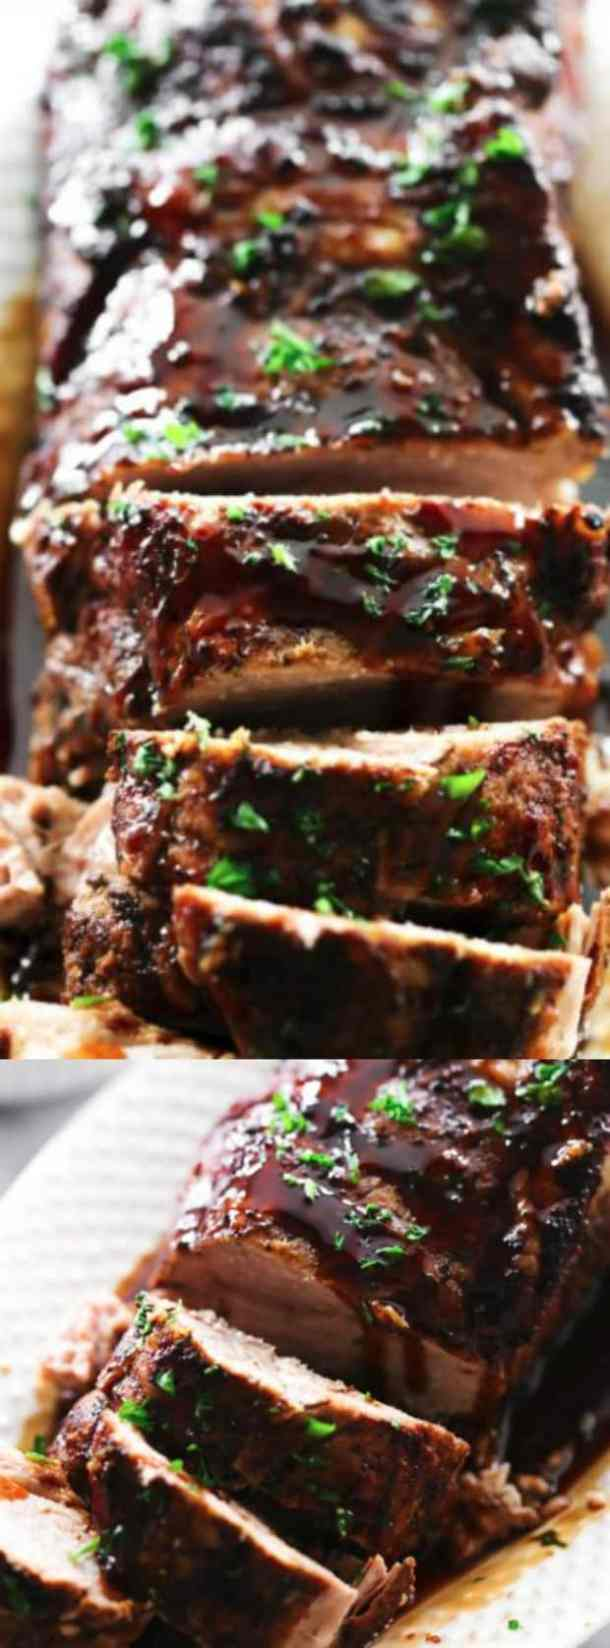 Slow Cooker Balsamic Glazed Pork Tenderloin